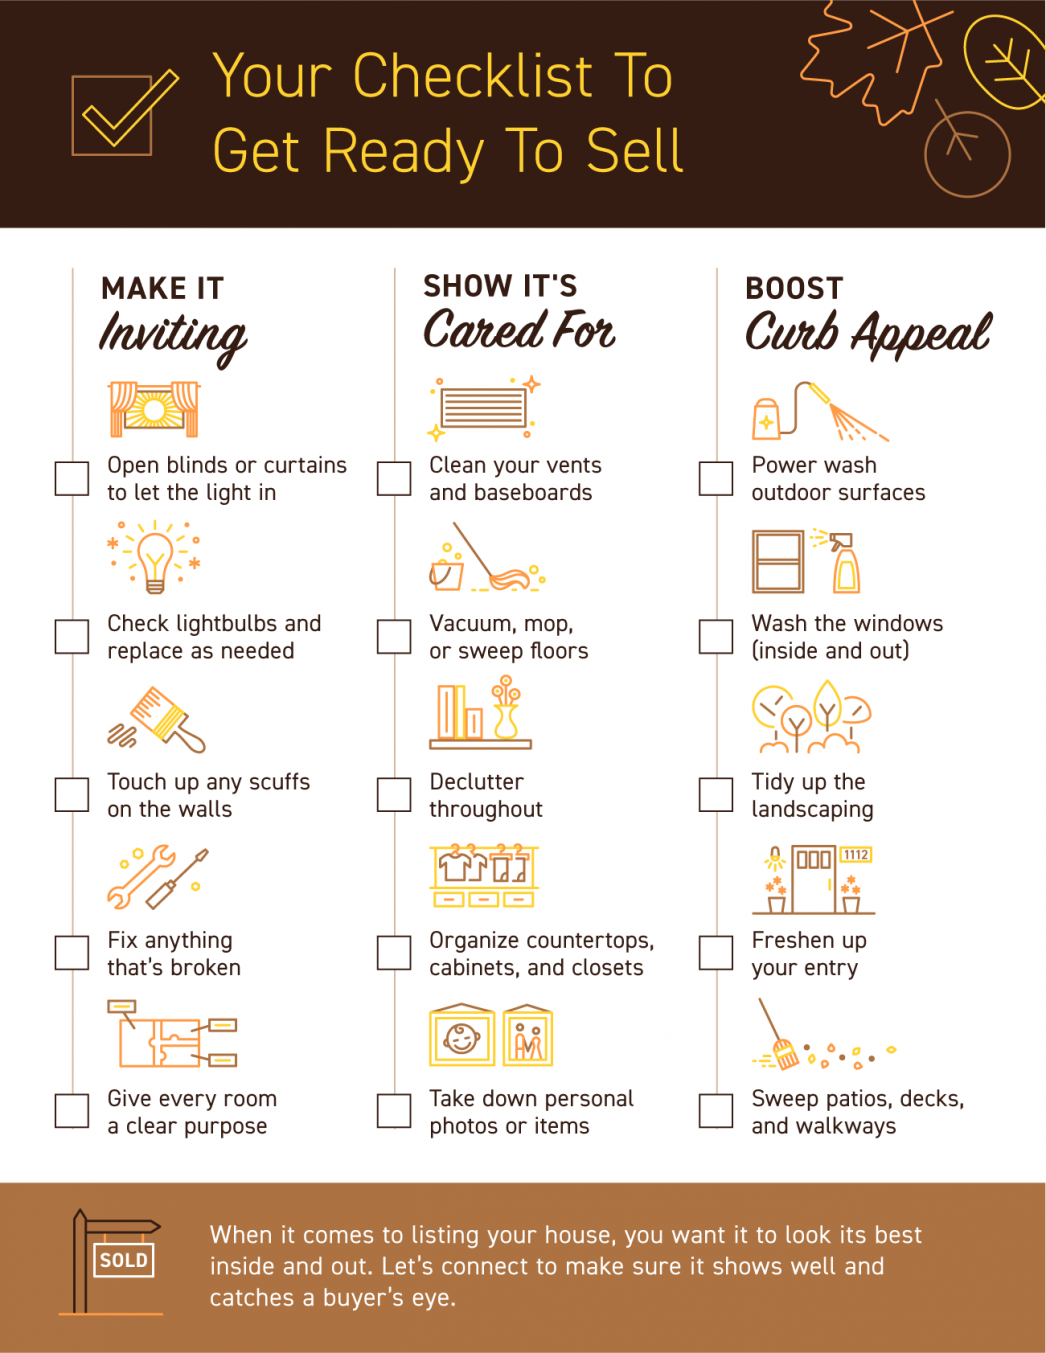 Your Checklist To Get Ready To Sell [INFOGRAPHIC]   MyKCM